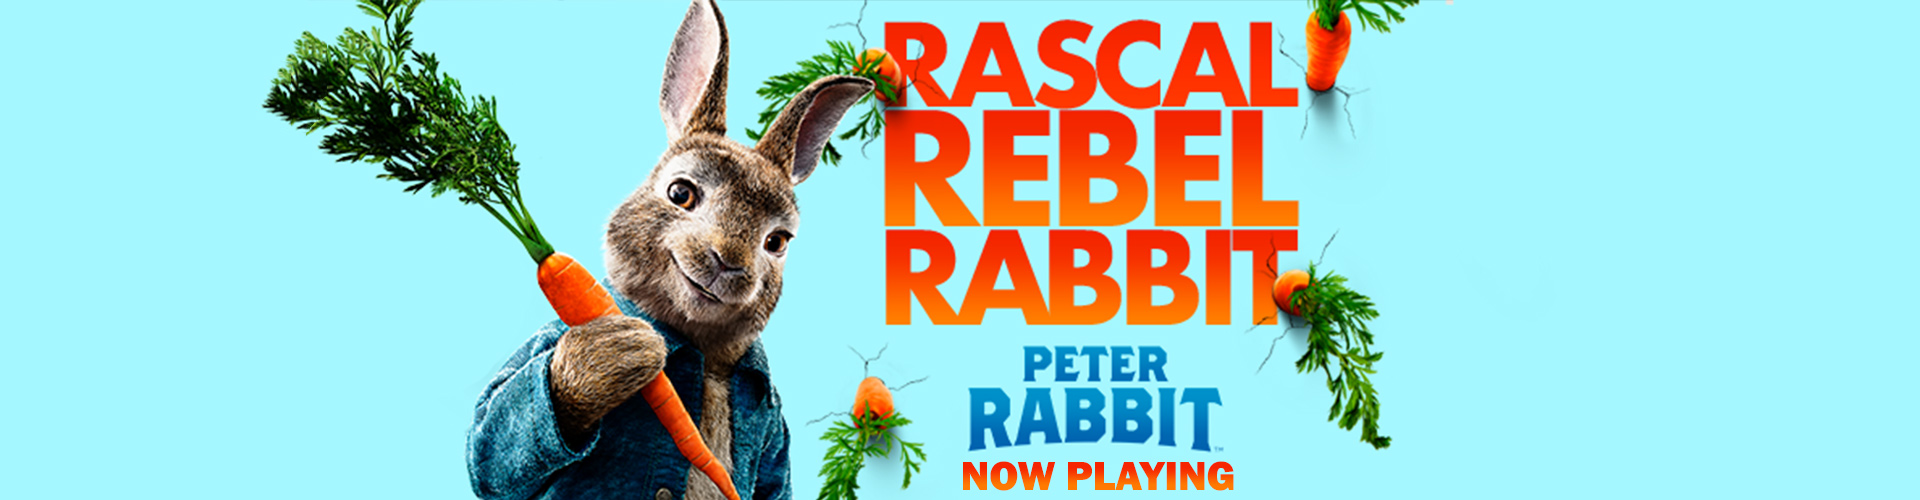 peter-rabbit-now-playing